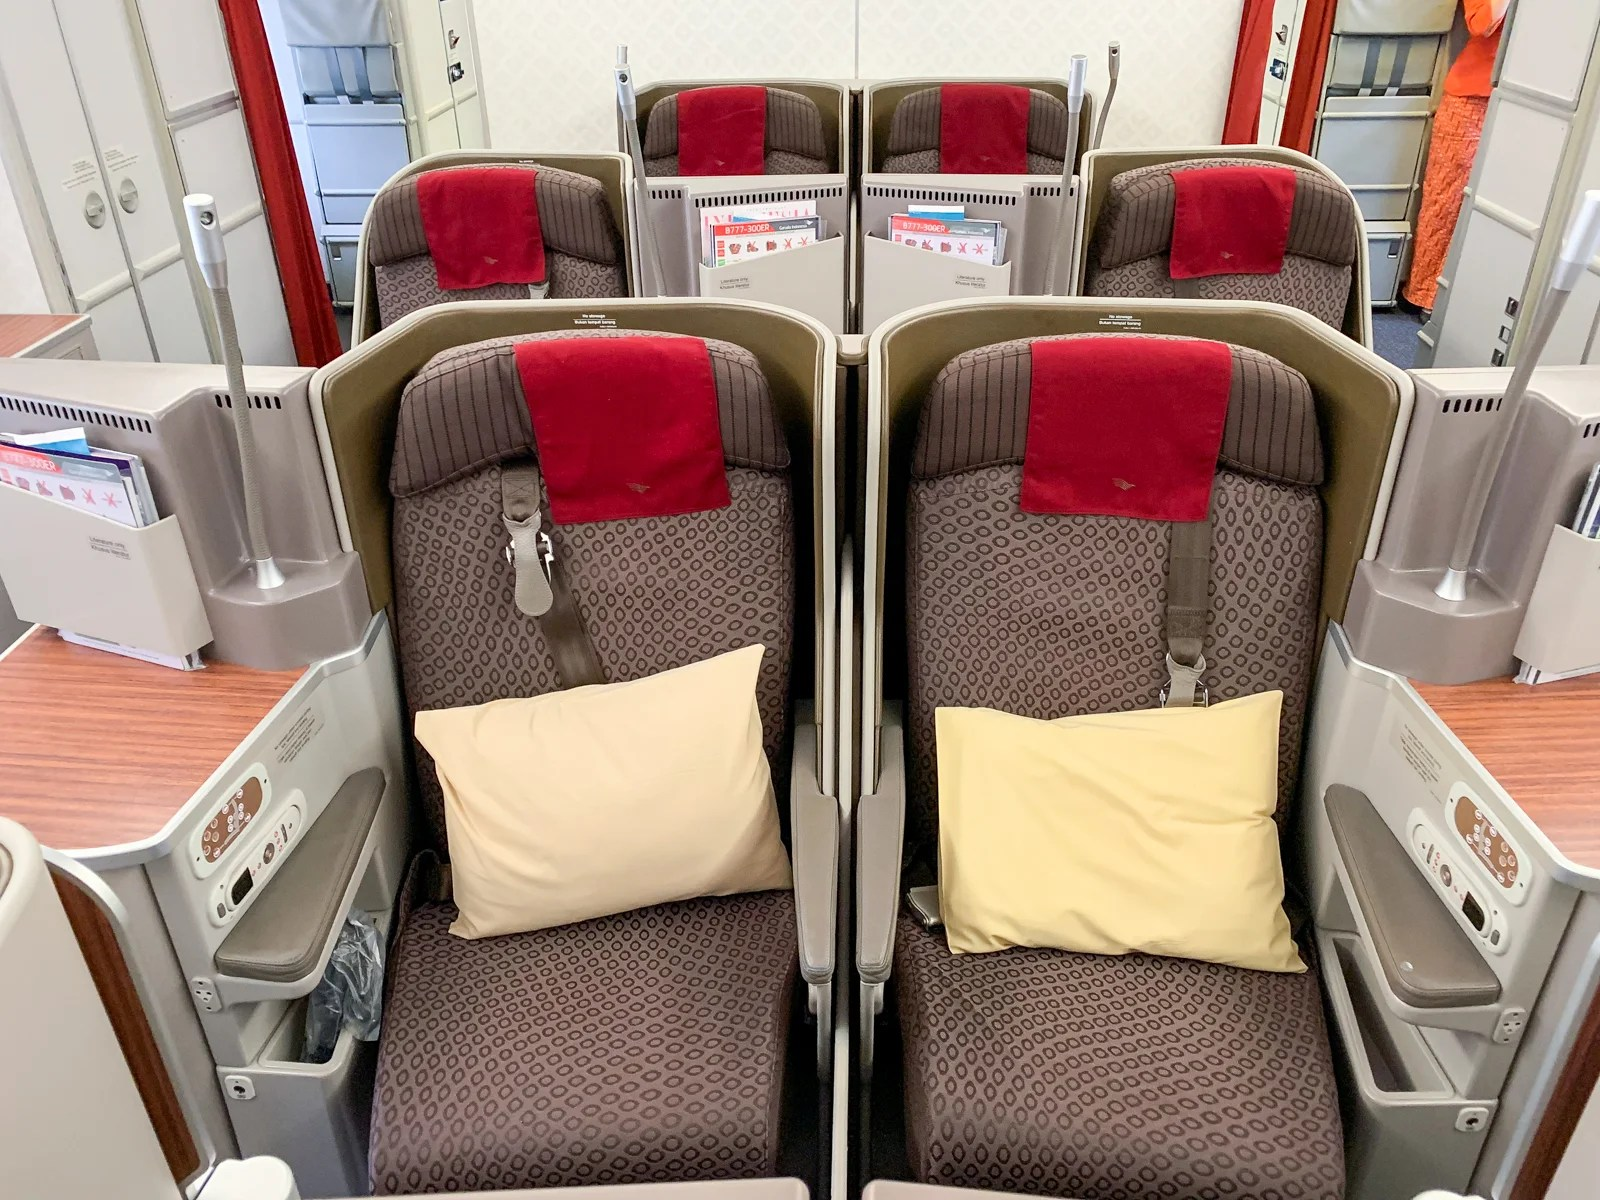 It's Got Potential: Flying Garuda Indonesia in Business Class on the 777-300ER